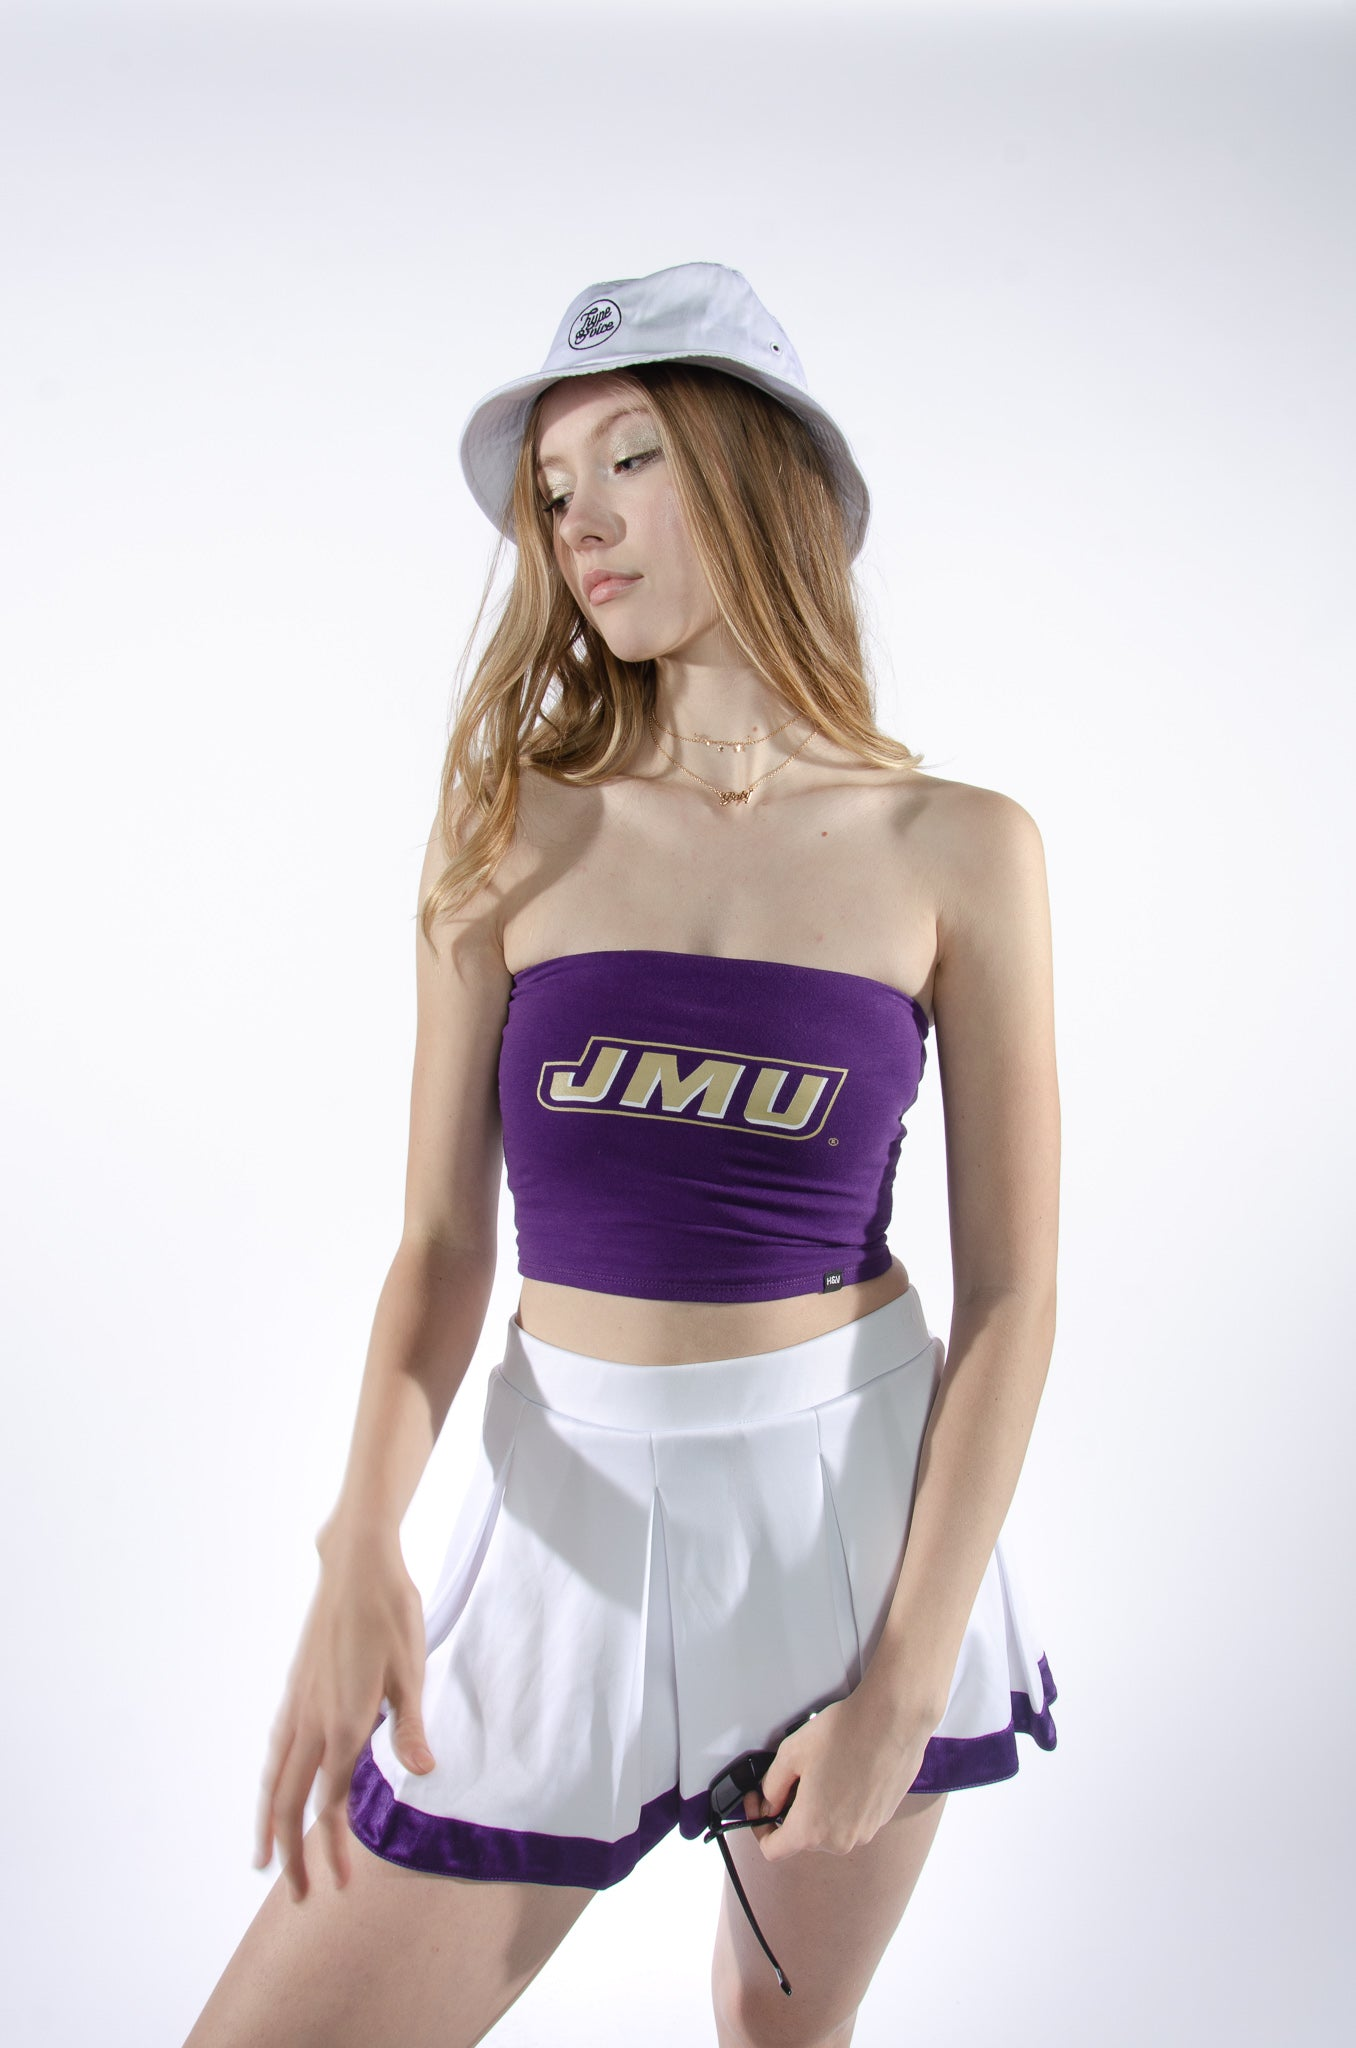 James Madison University Tube Top - Hype and Vice